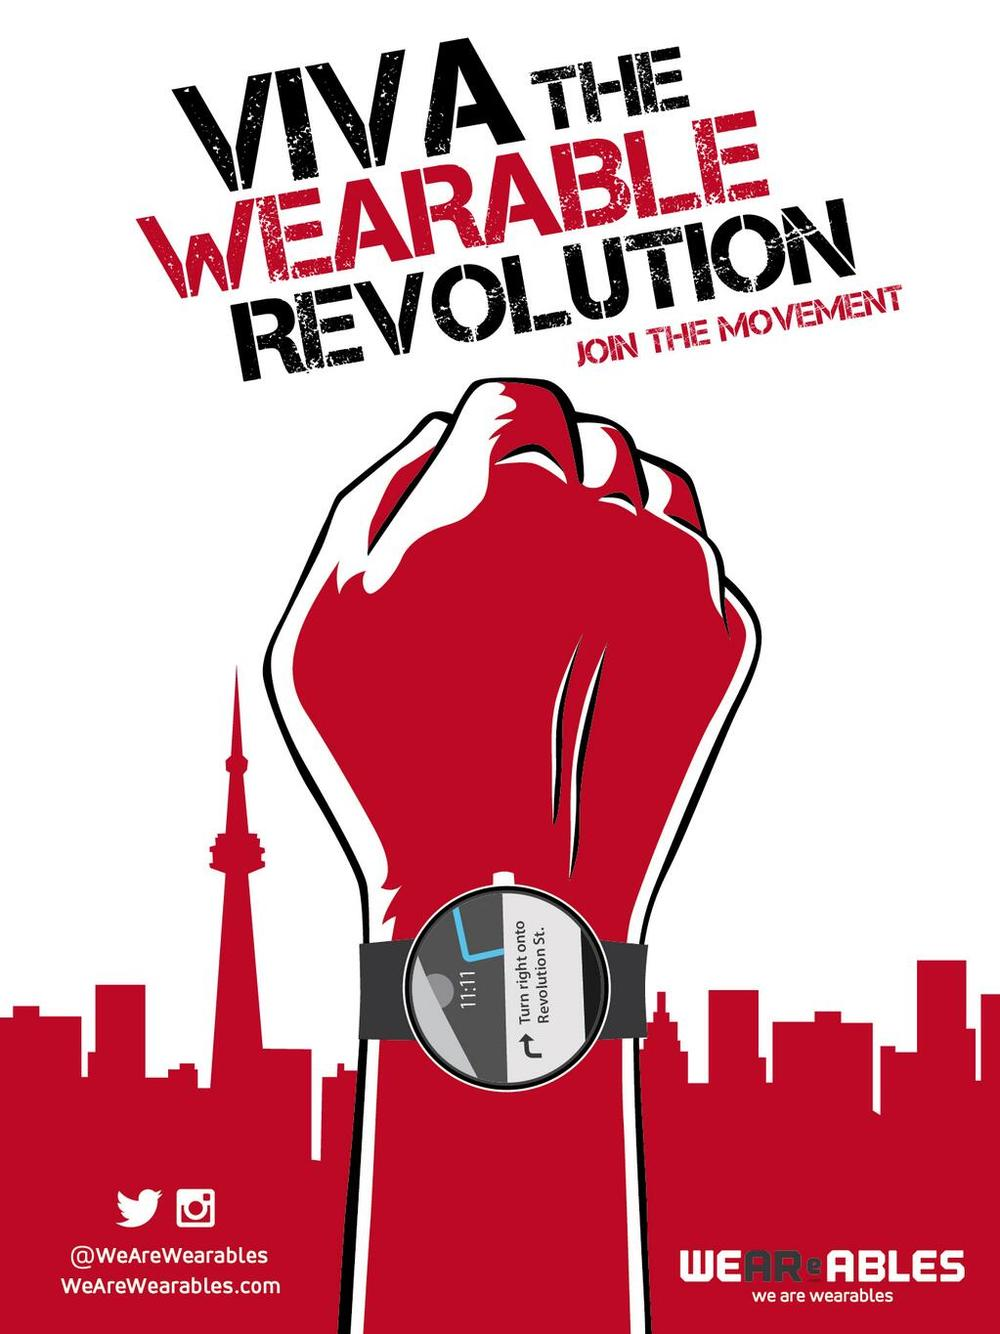 wearewearables: Welcome to the Wearables Revolution: We Are Wearables Hi Everyone! It's Tom the guy behind all 1,606 (now 1,607) posts on this blog I started way back in 2011. I can't believe its been over four years! I've loved watching this community grow, reading your notes and seeing what you are all interested in when it comes to this amazing new world of emerging technology. Thank you for being such an awesome group of future junkies! But just as tech continues to change over time, it is time for this blog to evolve too. And I've got some exciting news for us as we move forward. Keep reading Long live the wearable! Check out (and contribute to) she++ challenge's wearables project for this month. You could win a pebble watch!